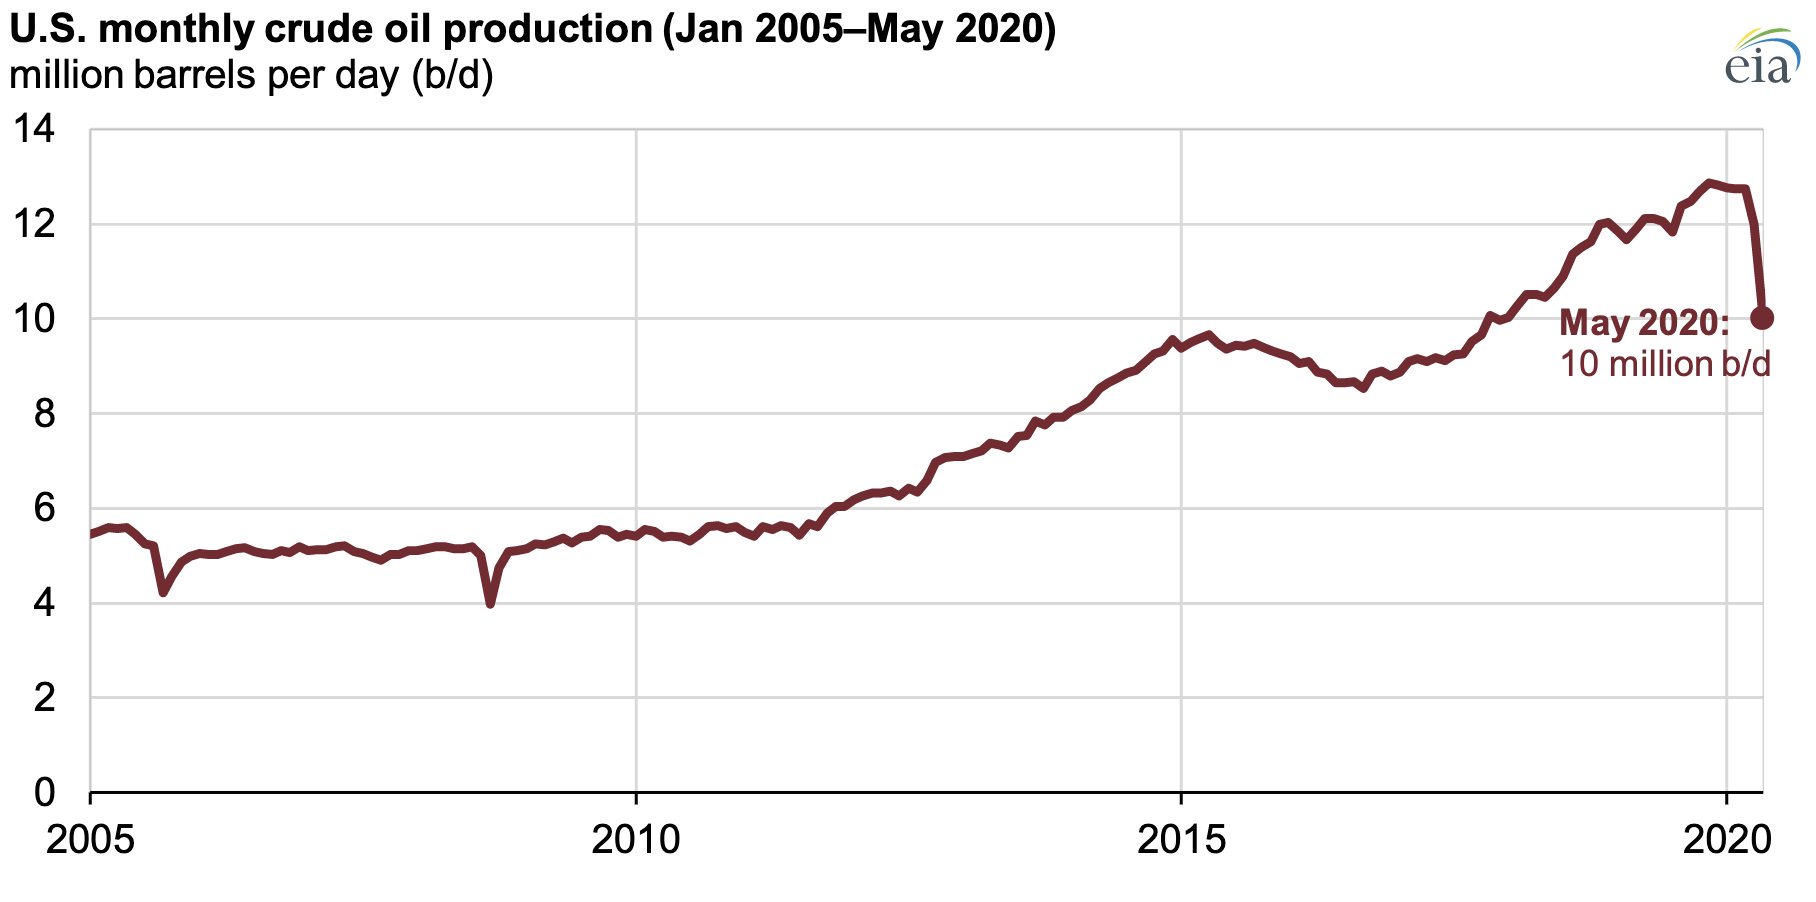 U.S. monthly crude oil production (Jan 2005-May 2020)